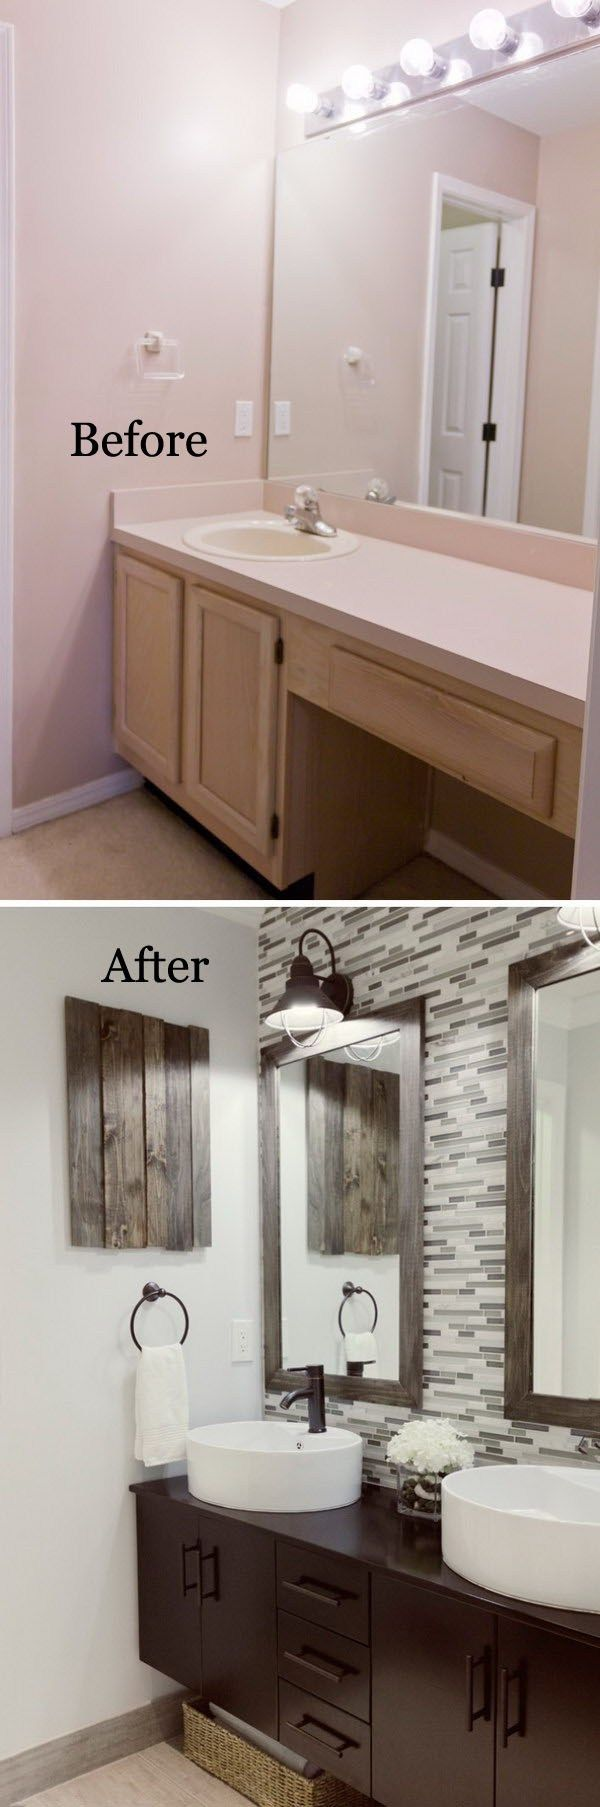 Small Bathroom Makeovers Before And After Pics Pinterest - Remodeling small bathroom ideas before and after